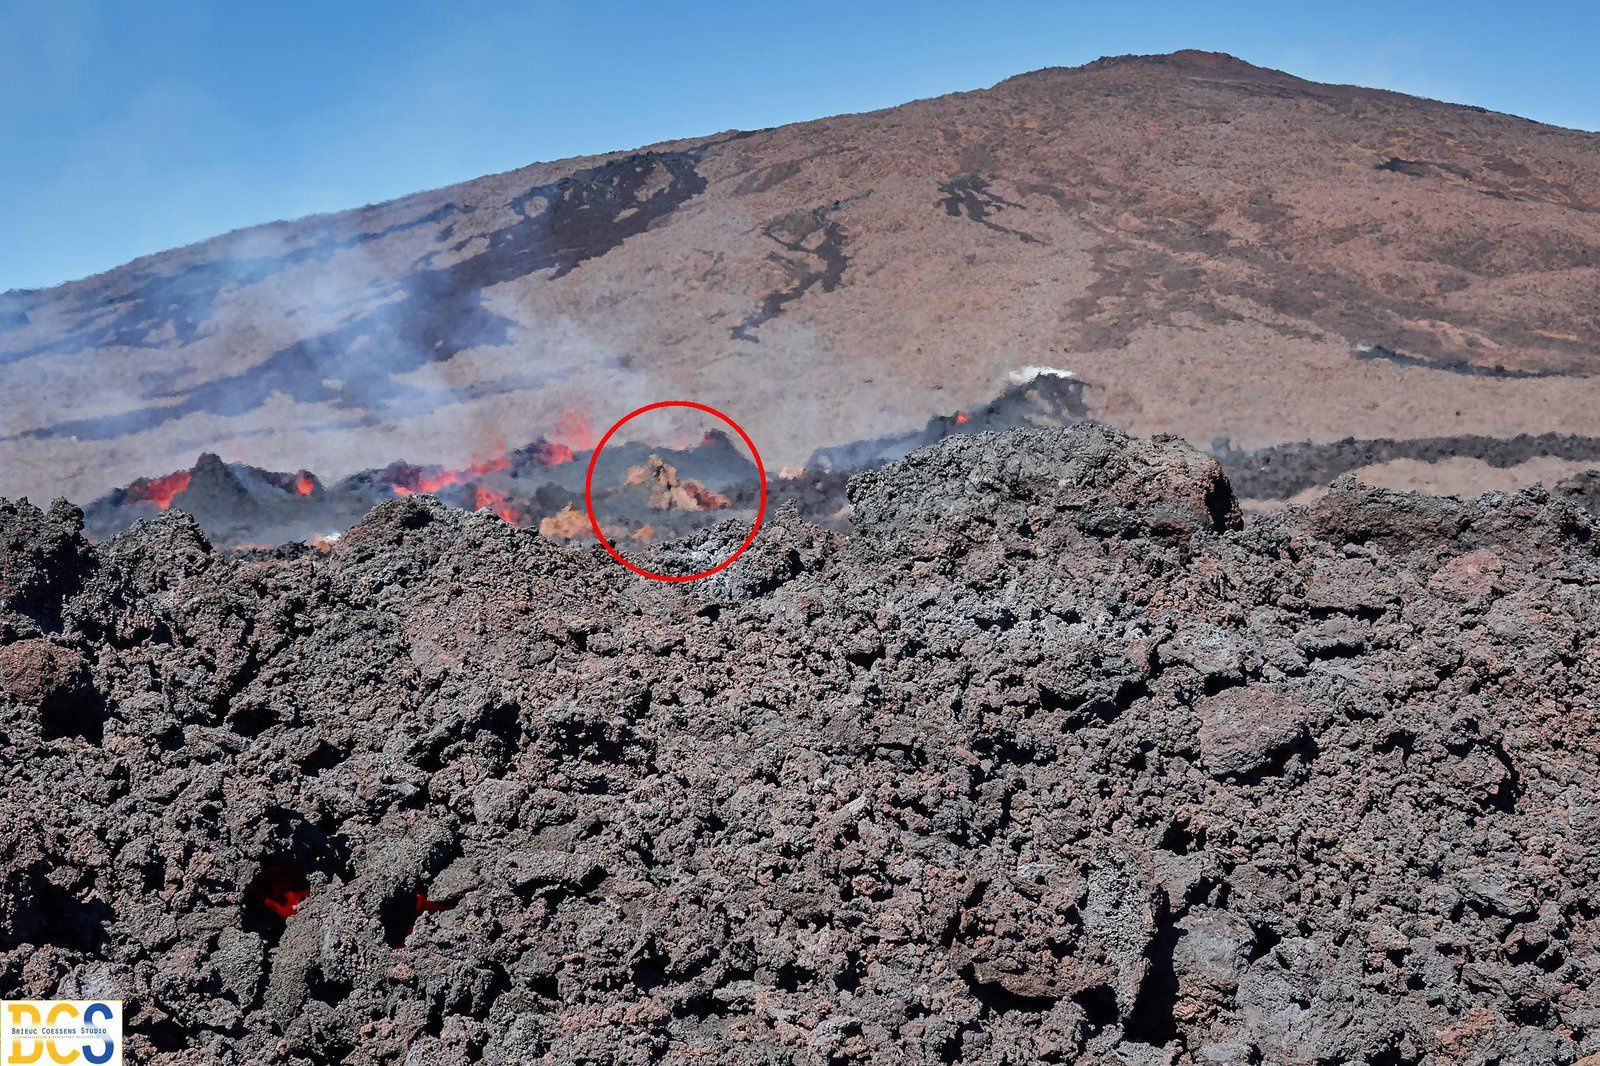 Piton de La Fournaise - disappearance of the Rosemont Chapel (red circle) under the lava of the flows - photo 13.07.2018 © Brieuc Coessens